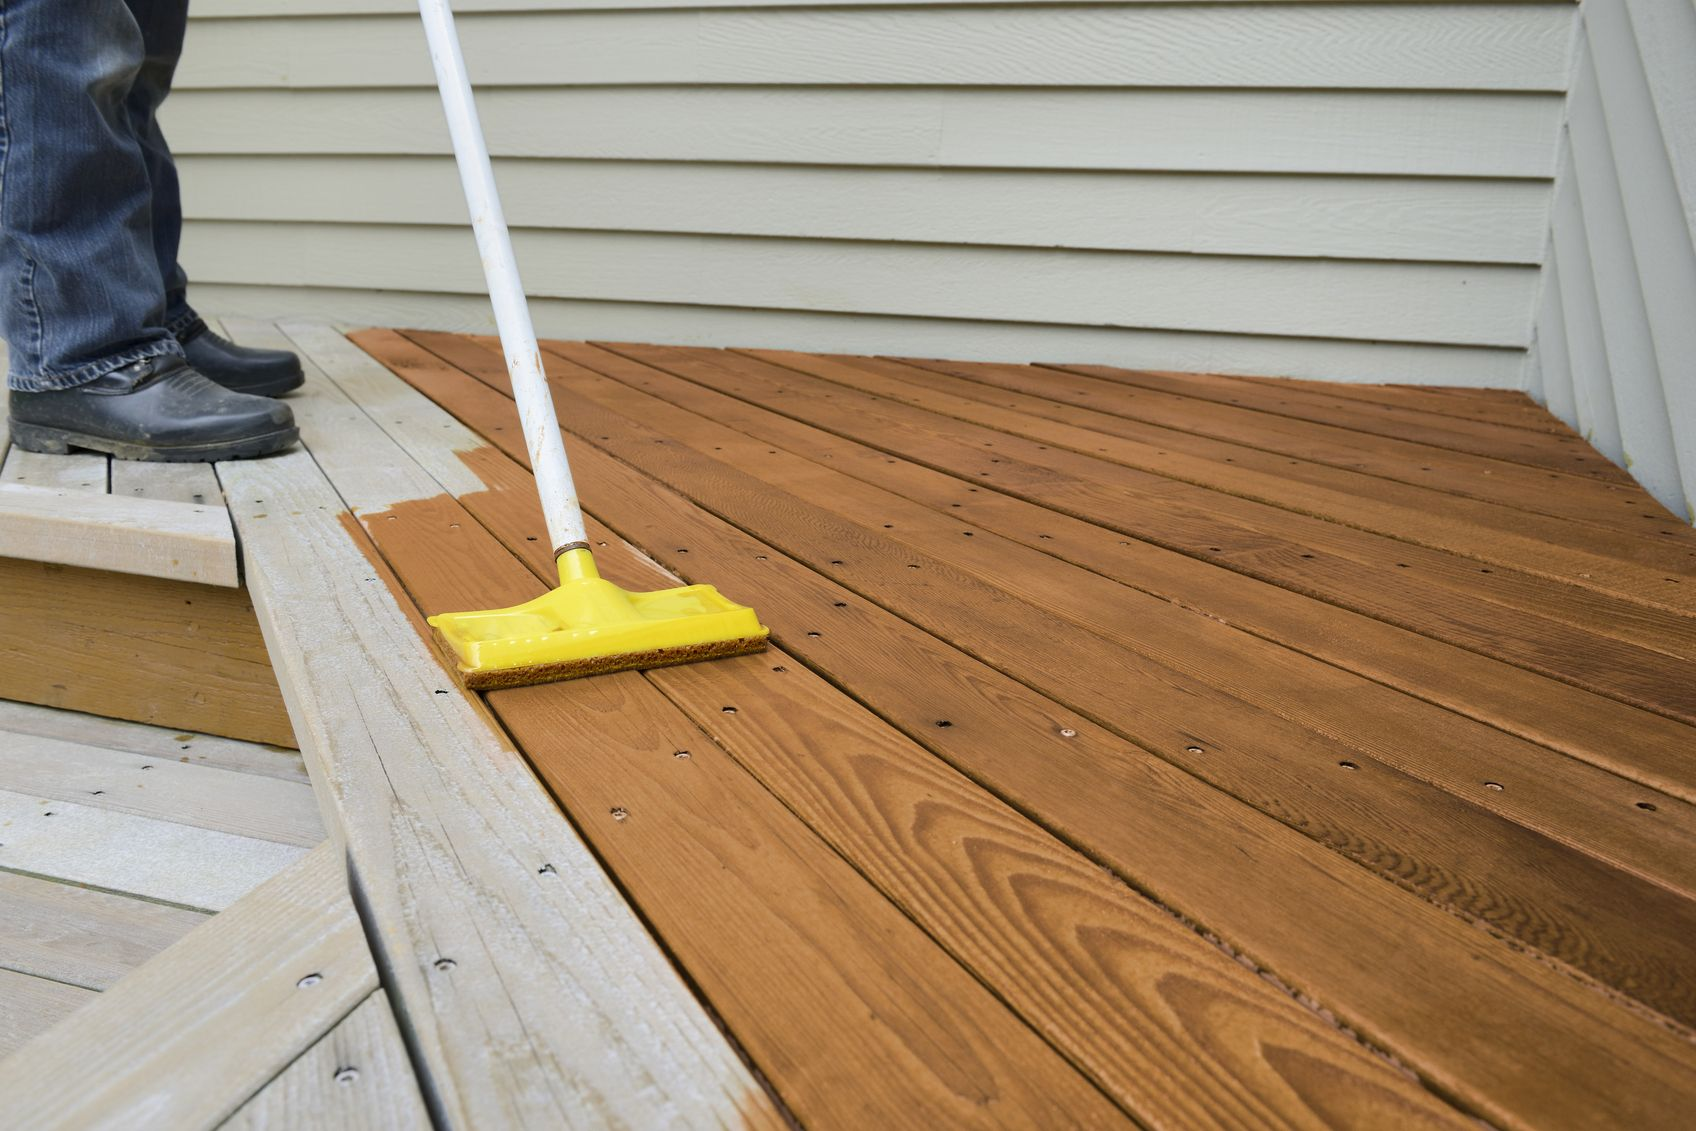 10 Best Rated Deck Stains Lovetoknow Wood Deck Stain Best Deck Stain Deck Stain Colors